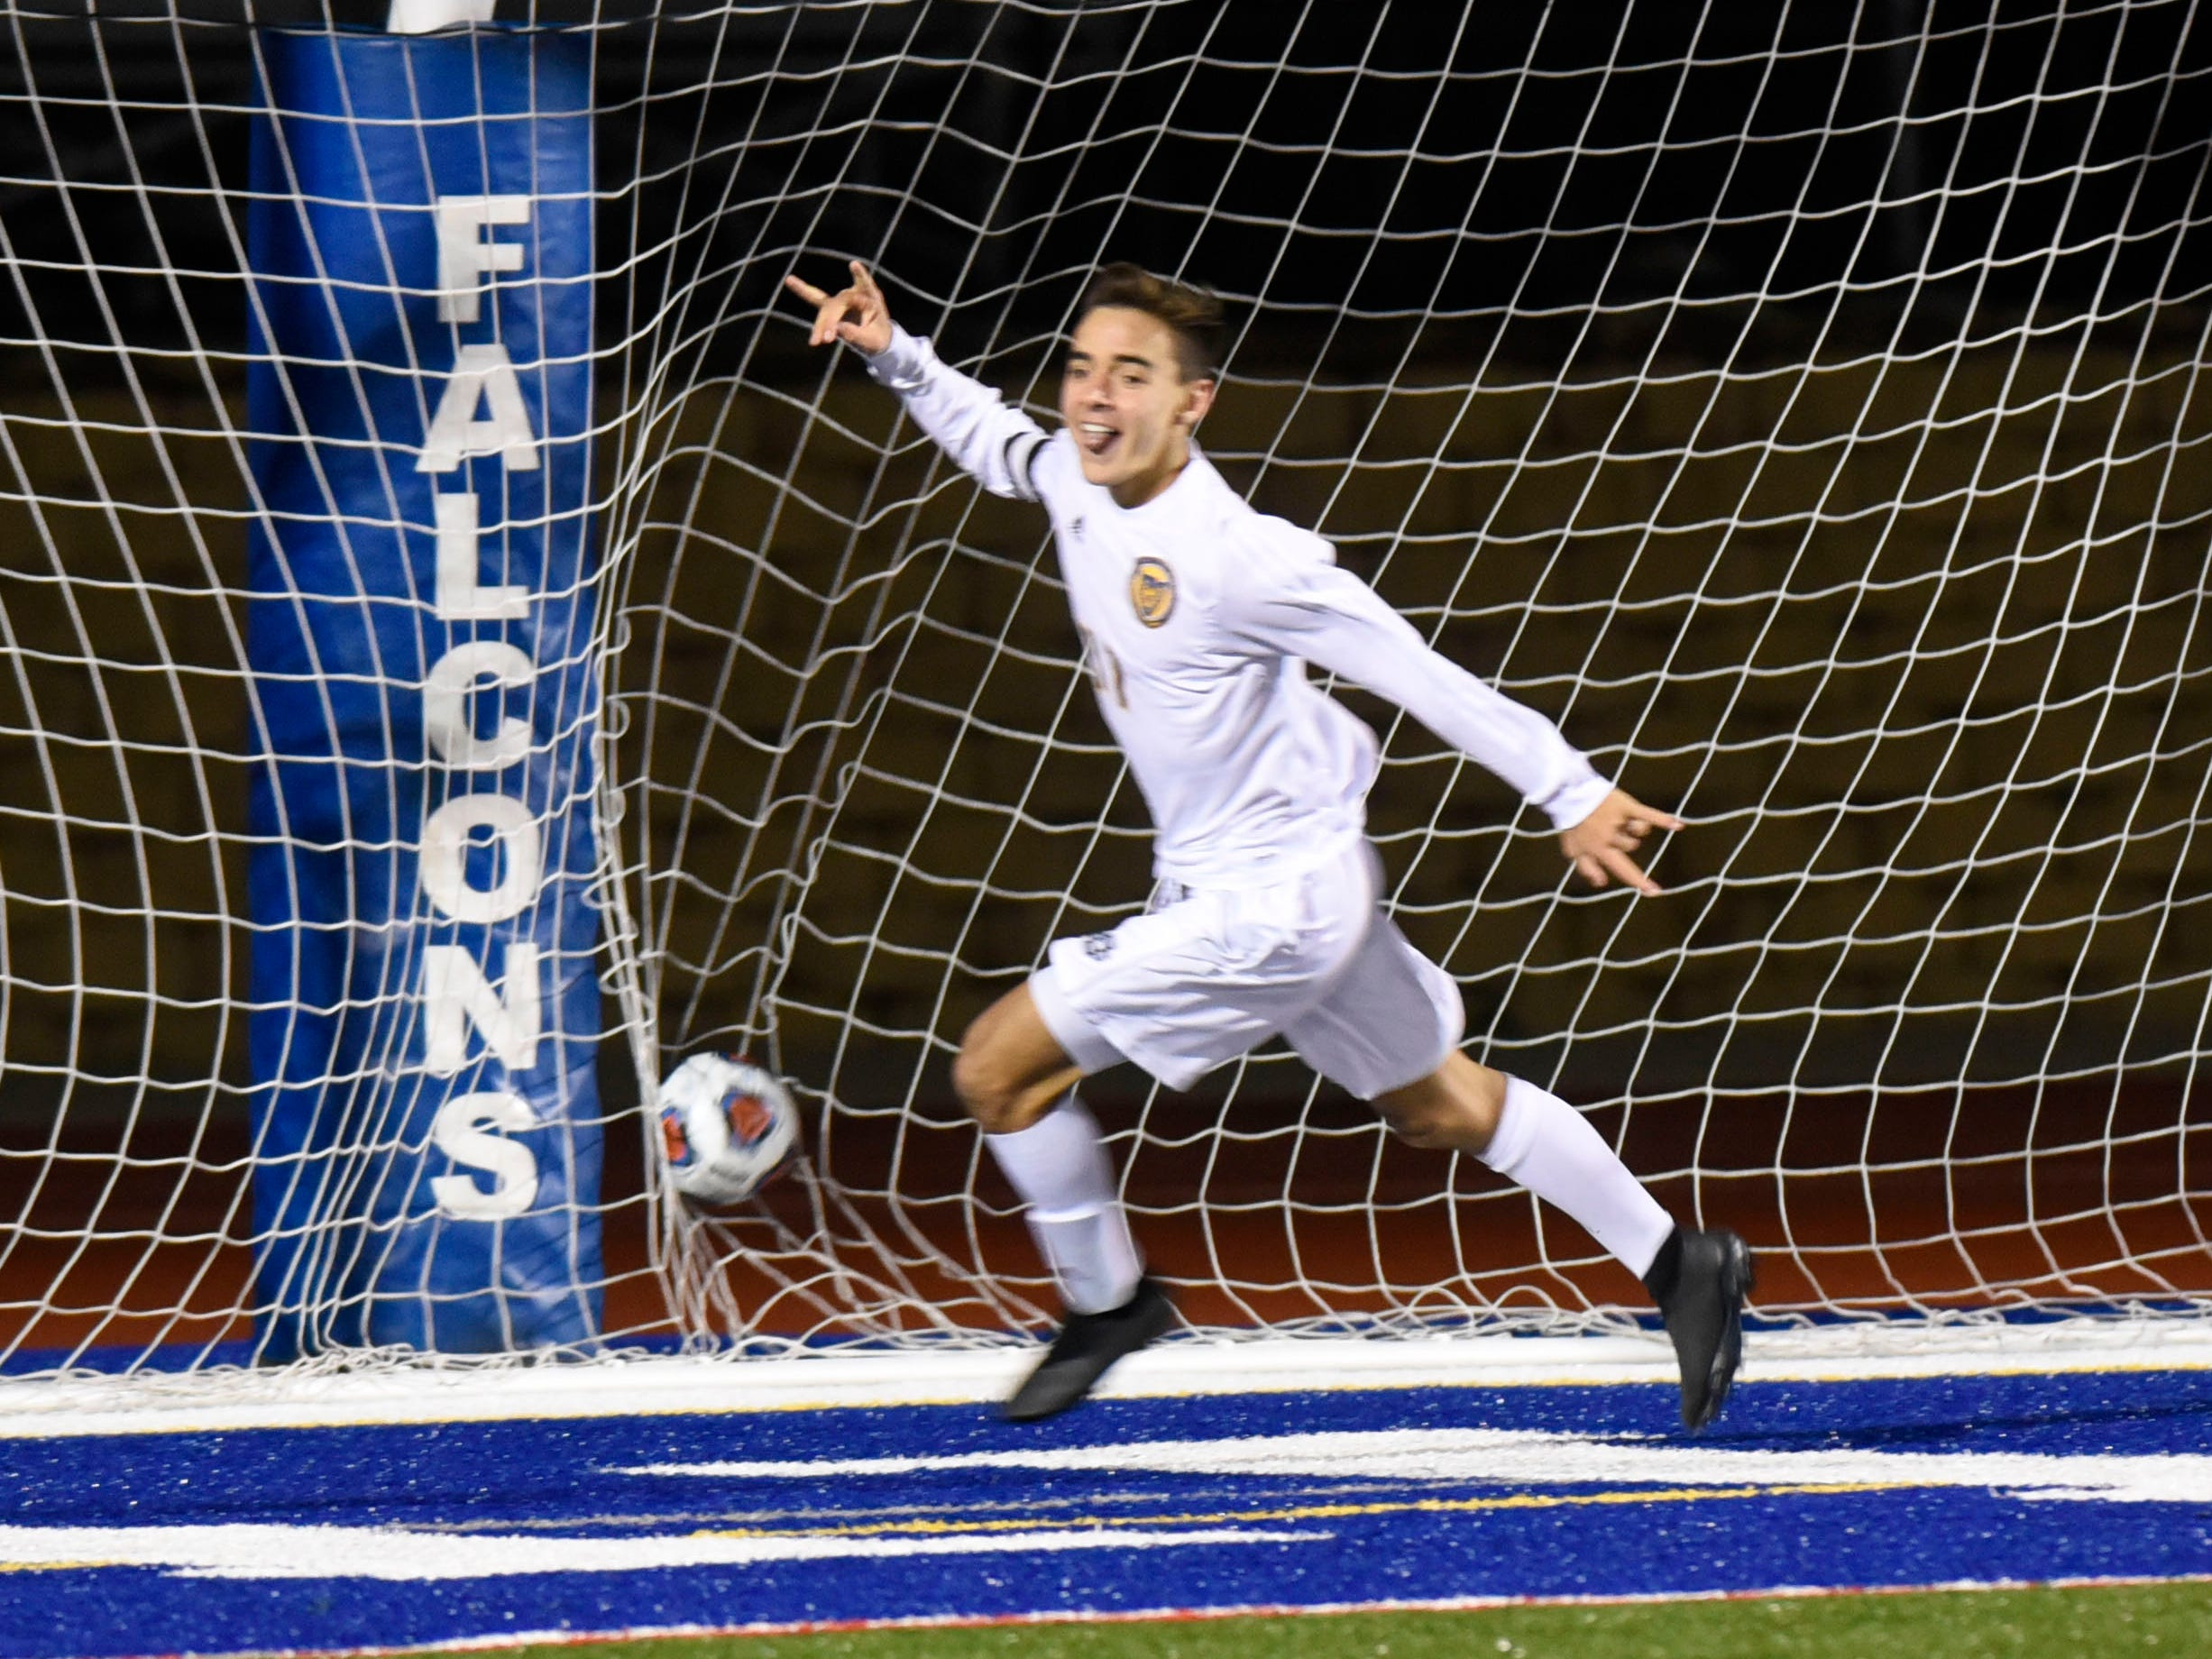 Detroit Country Day vs. Cranbrook Div. 2 soccer semifinal